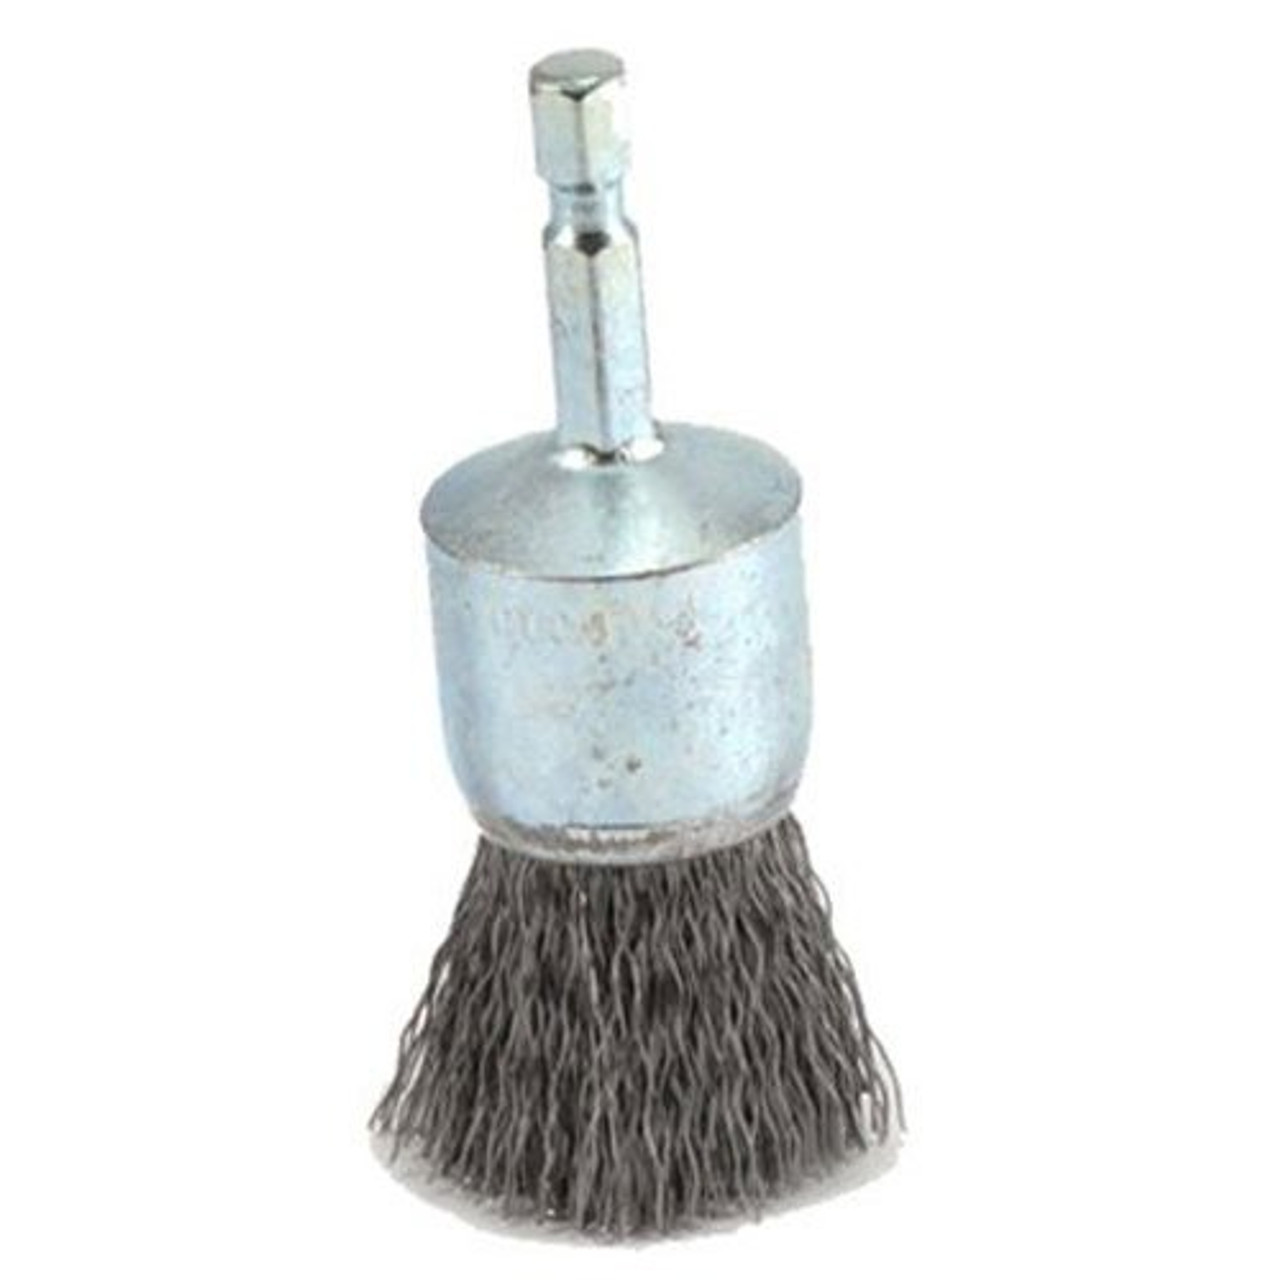 3-Inch-by-. Forney 72731 Wire Cup Brush Coarse Crimped with 1//4-Inch Hex Shank